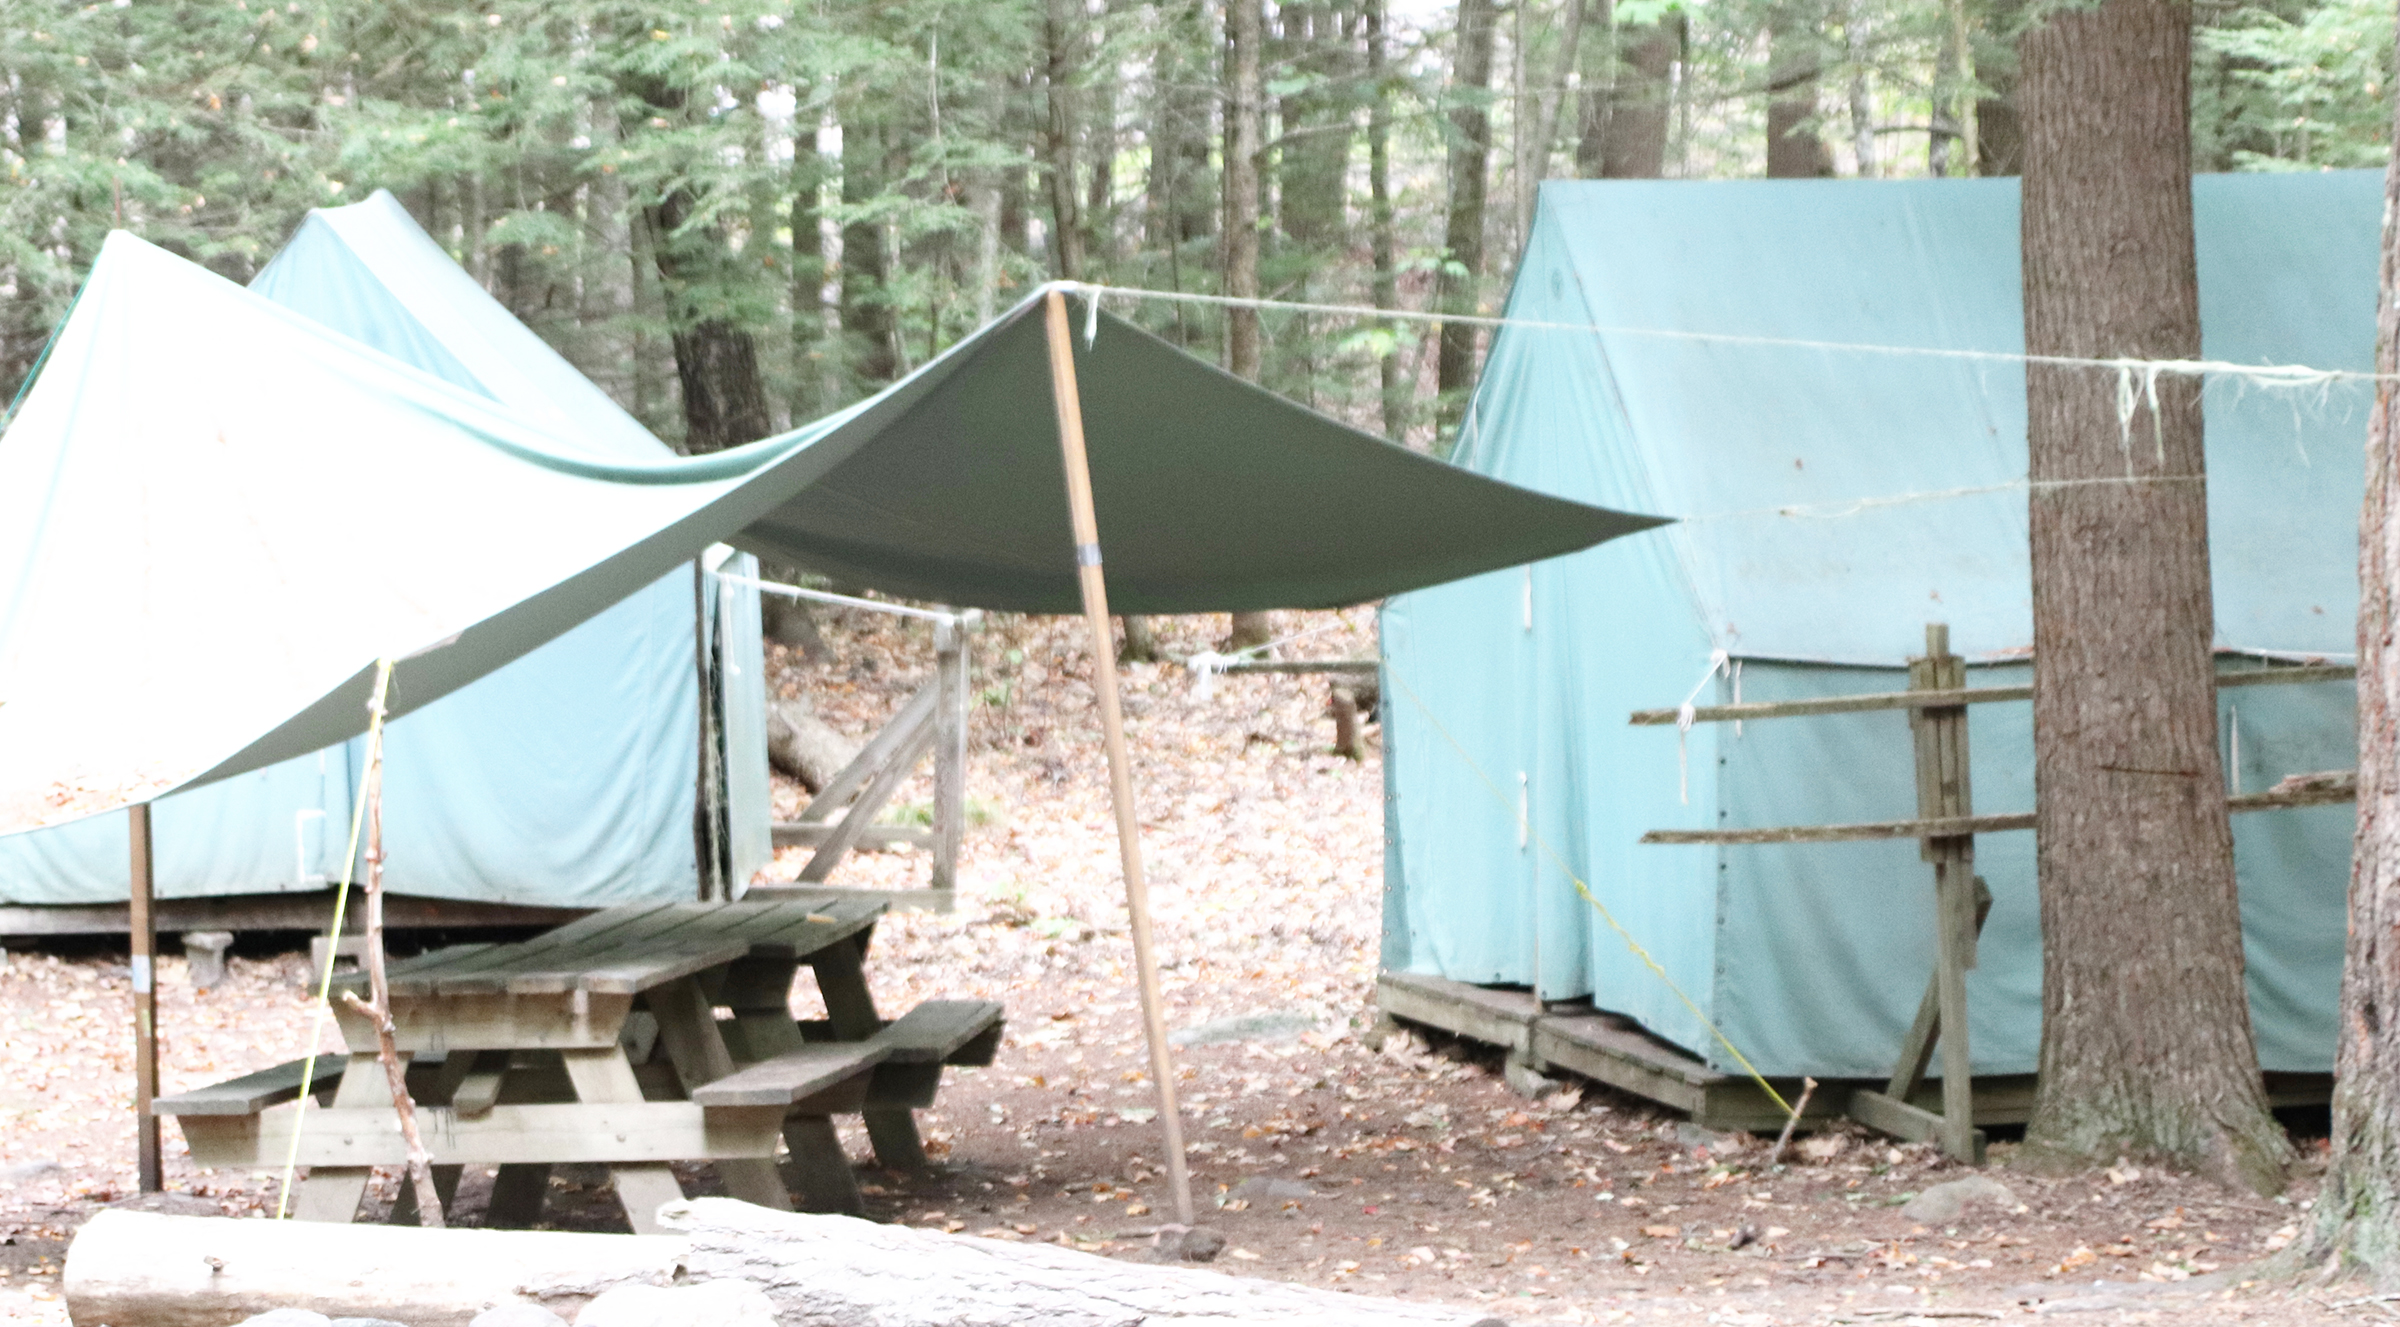 Canvas Tents in a woodsy location. & ZIONTIFIC 2018 Canvas Tent (2 beds) u2014 ZIONTIFIC Summer Solstice ...